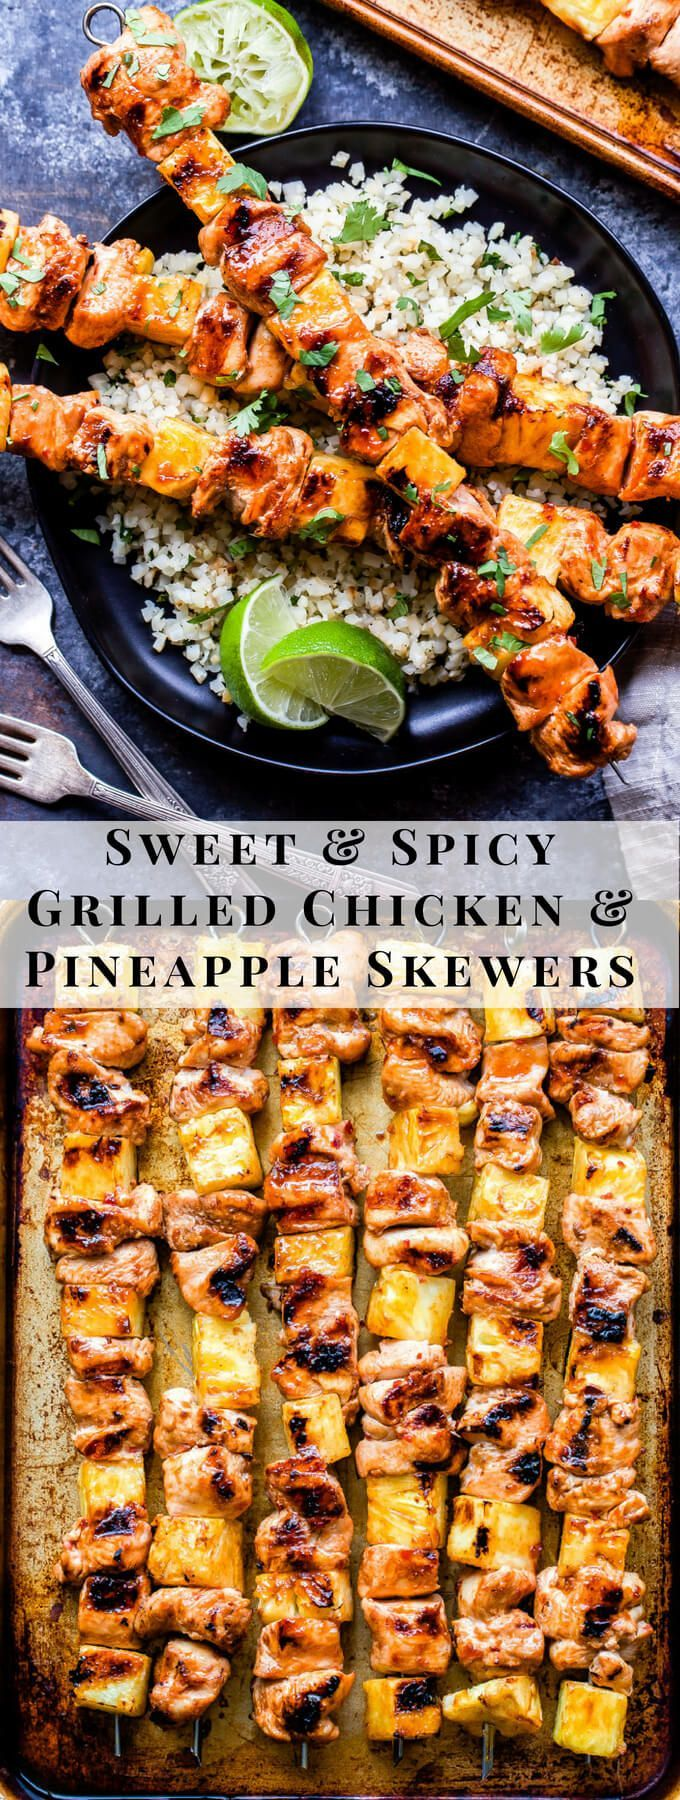 Sweet and Spicy Grilled Chicken and Pineapple Skewers - Recipe Runner